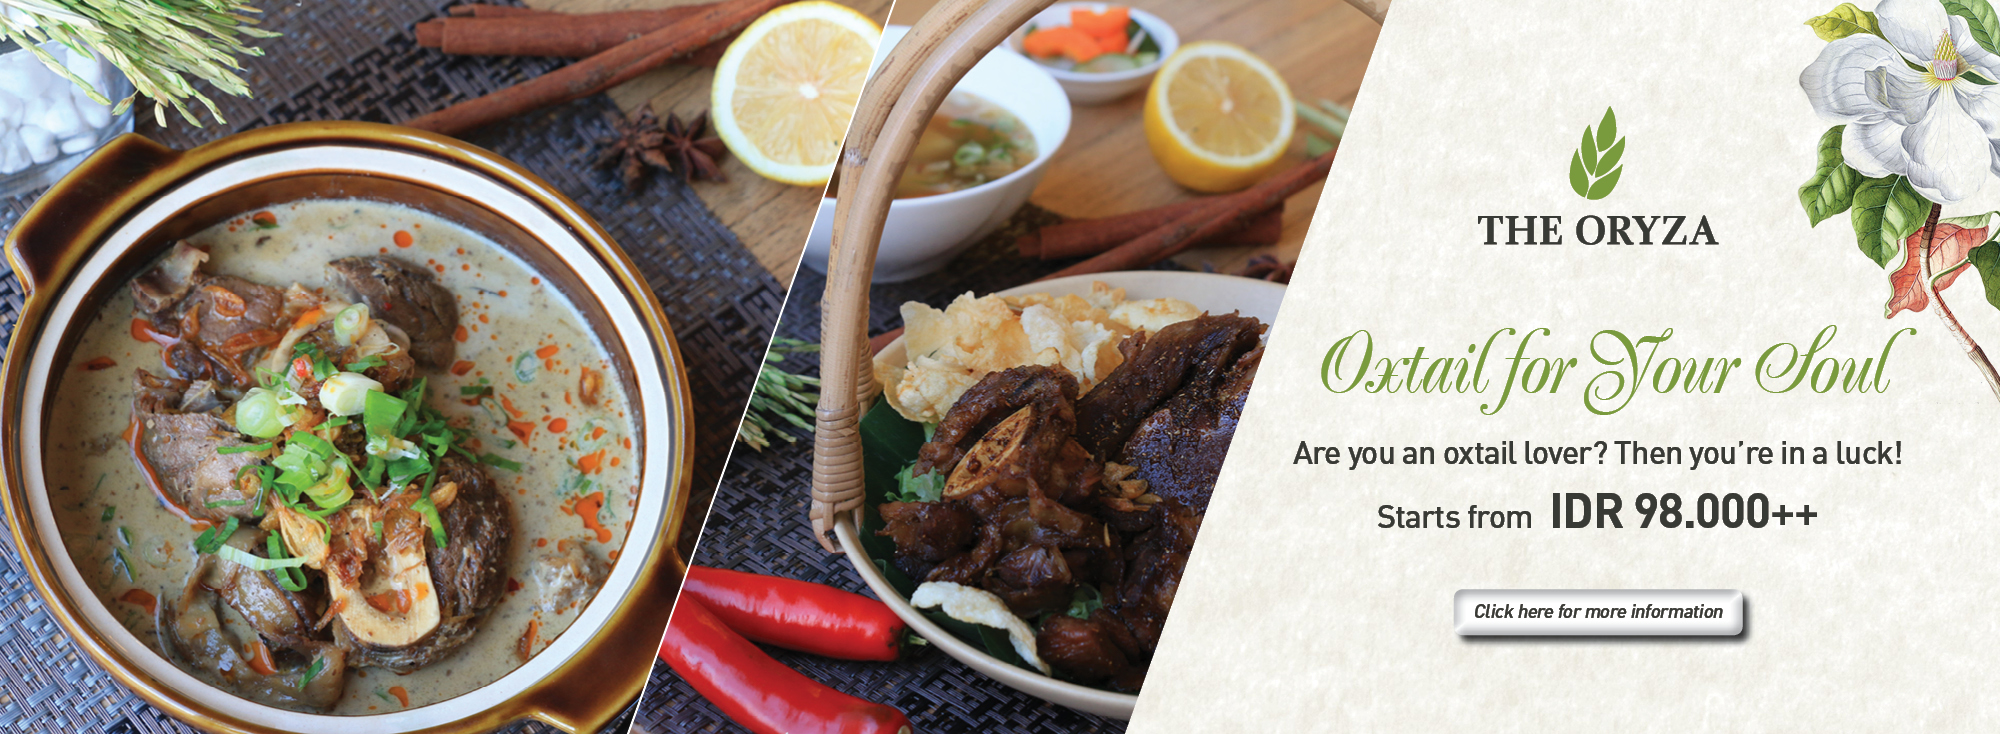 Oxtail Promotion